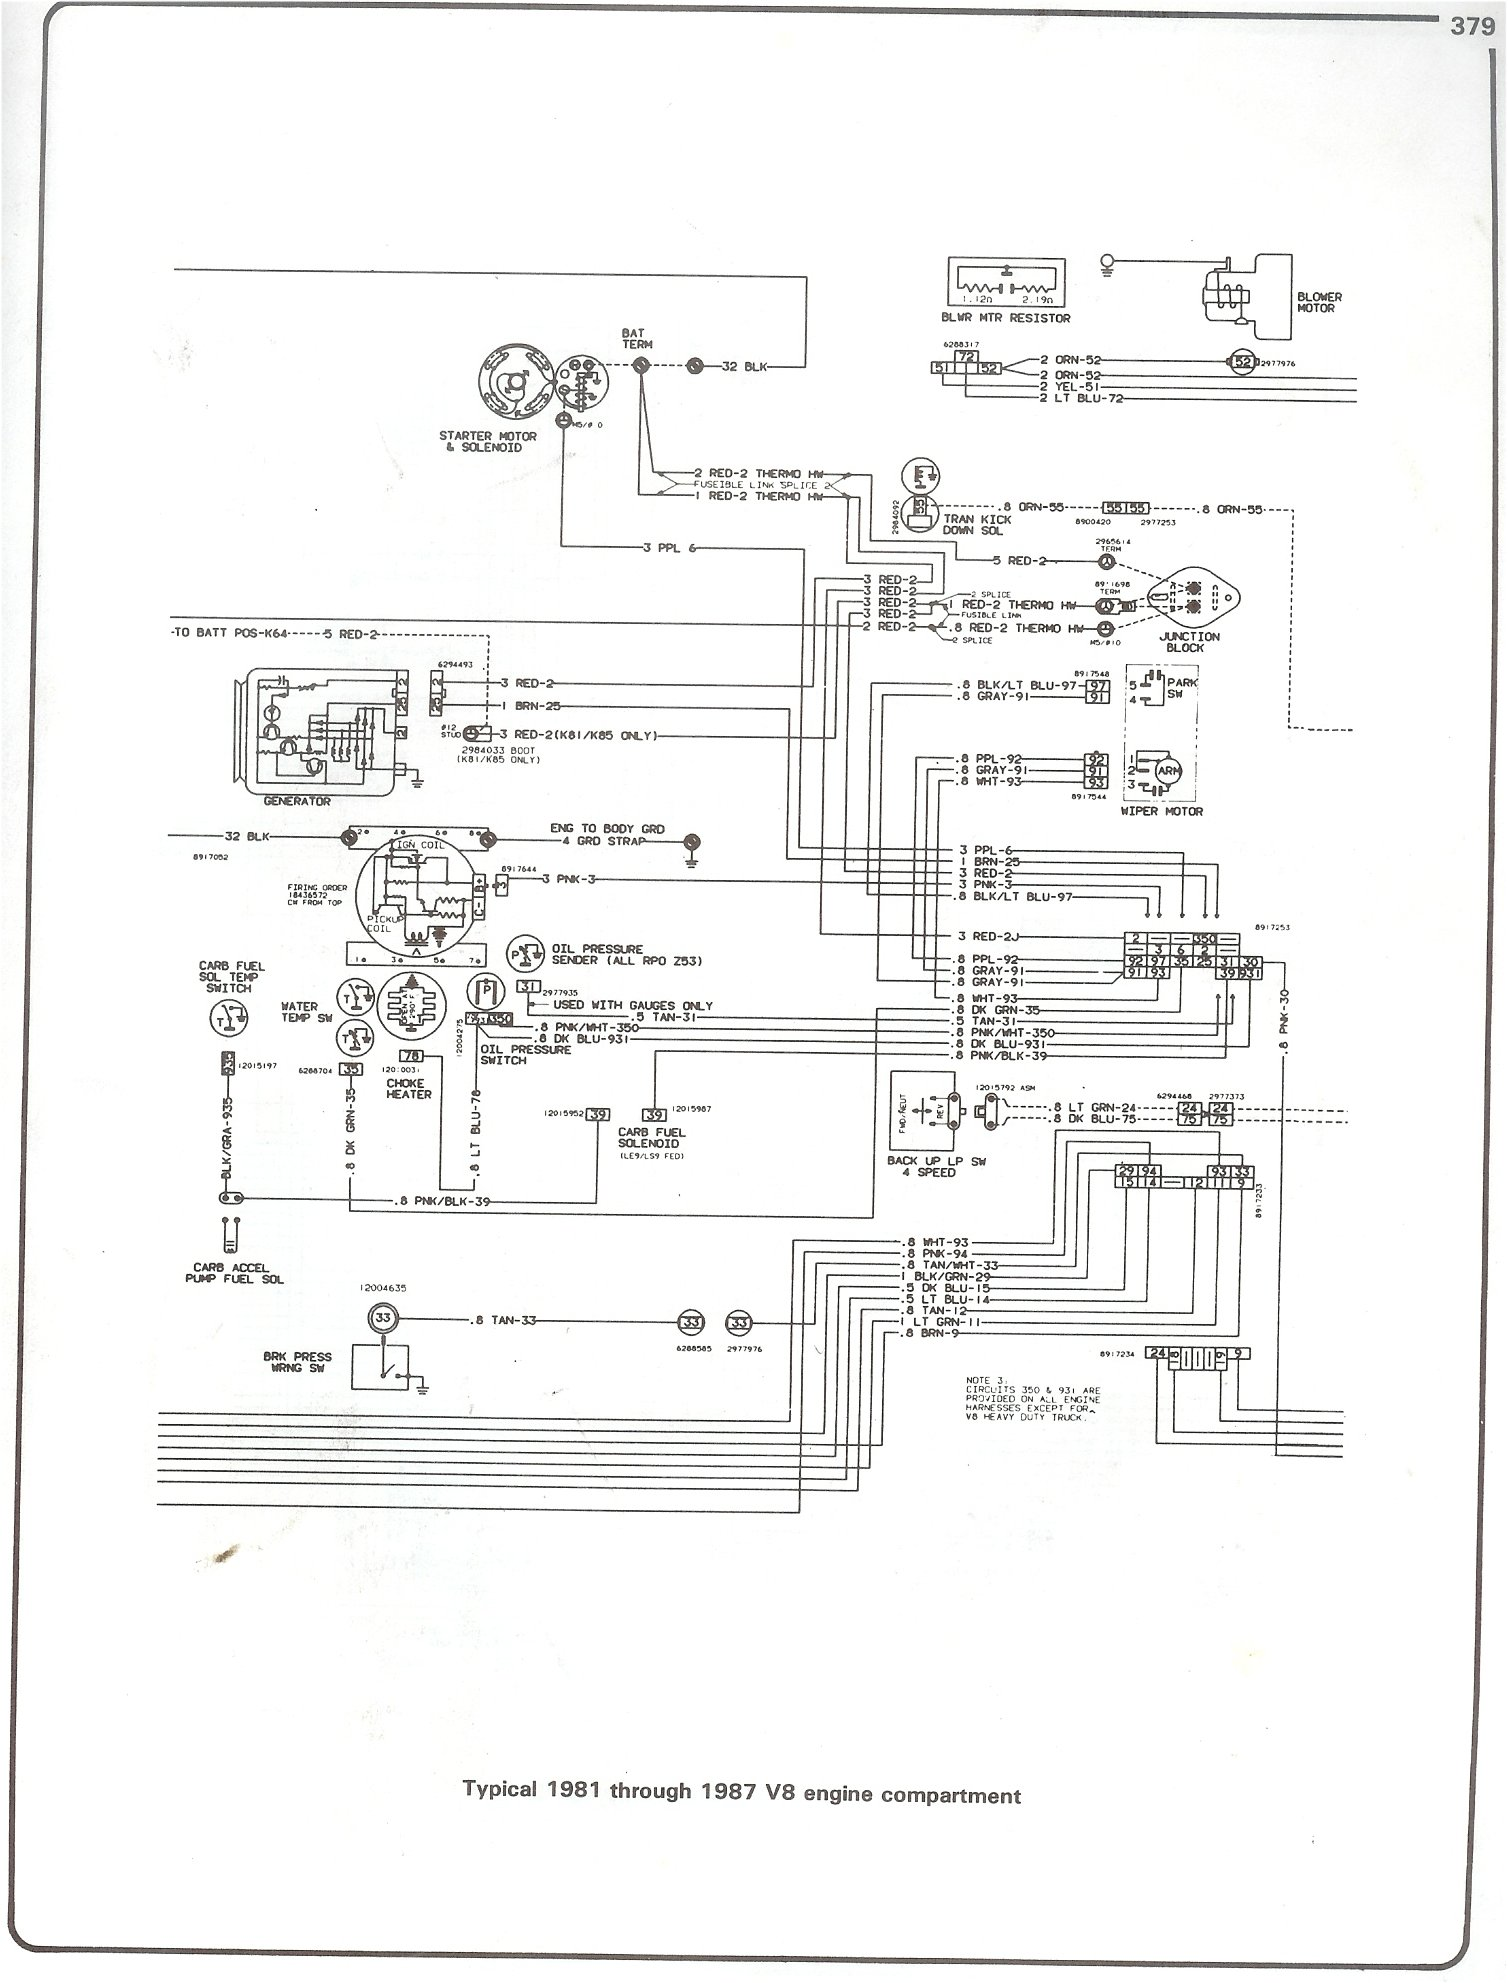 81 87_V8_engine complete 73 87 wiring diagrams chevy wiring schematics at fashall.co